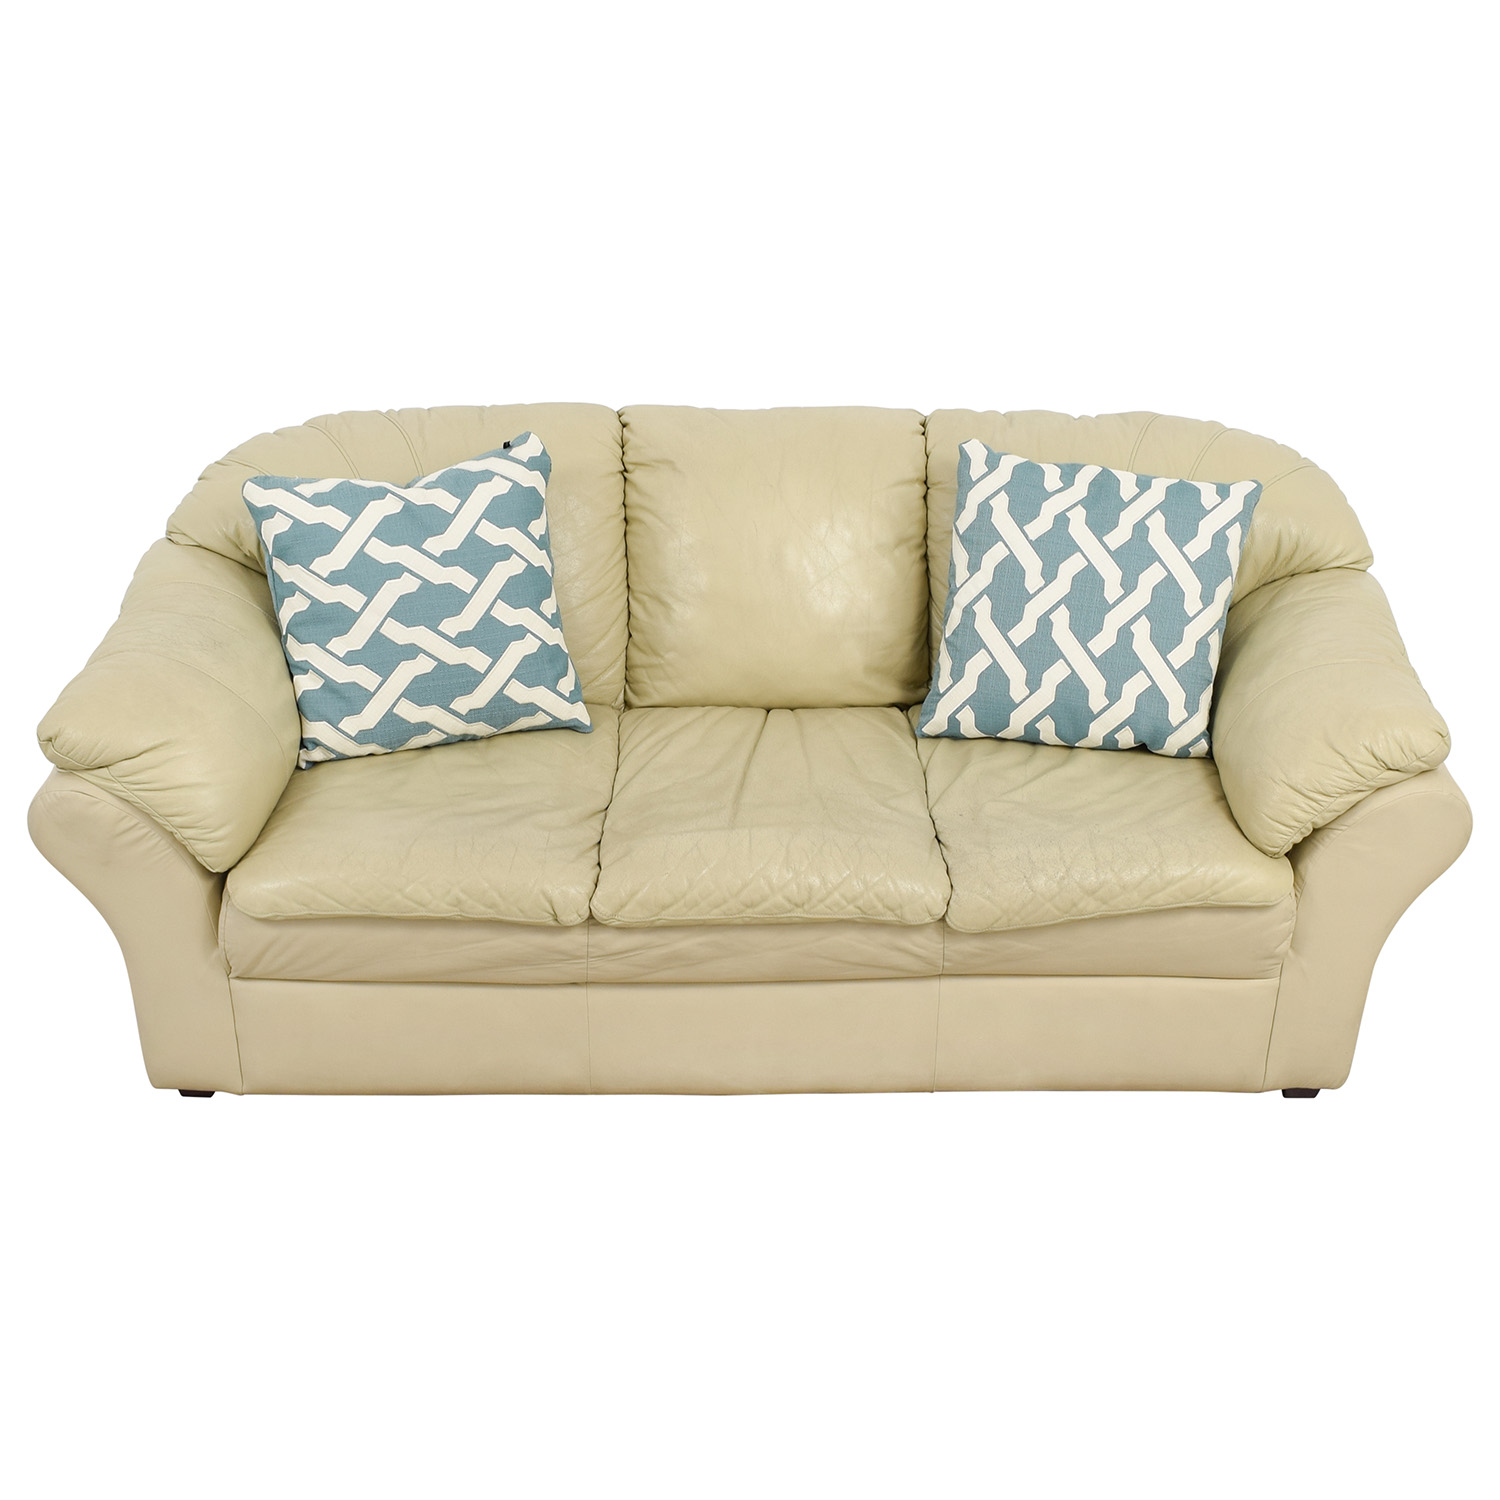 Mals Brooklyn Furniture Mals Brooklyn Furniture Beige Sofa second hand